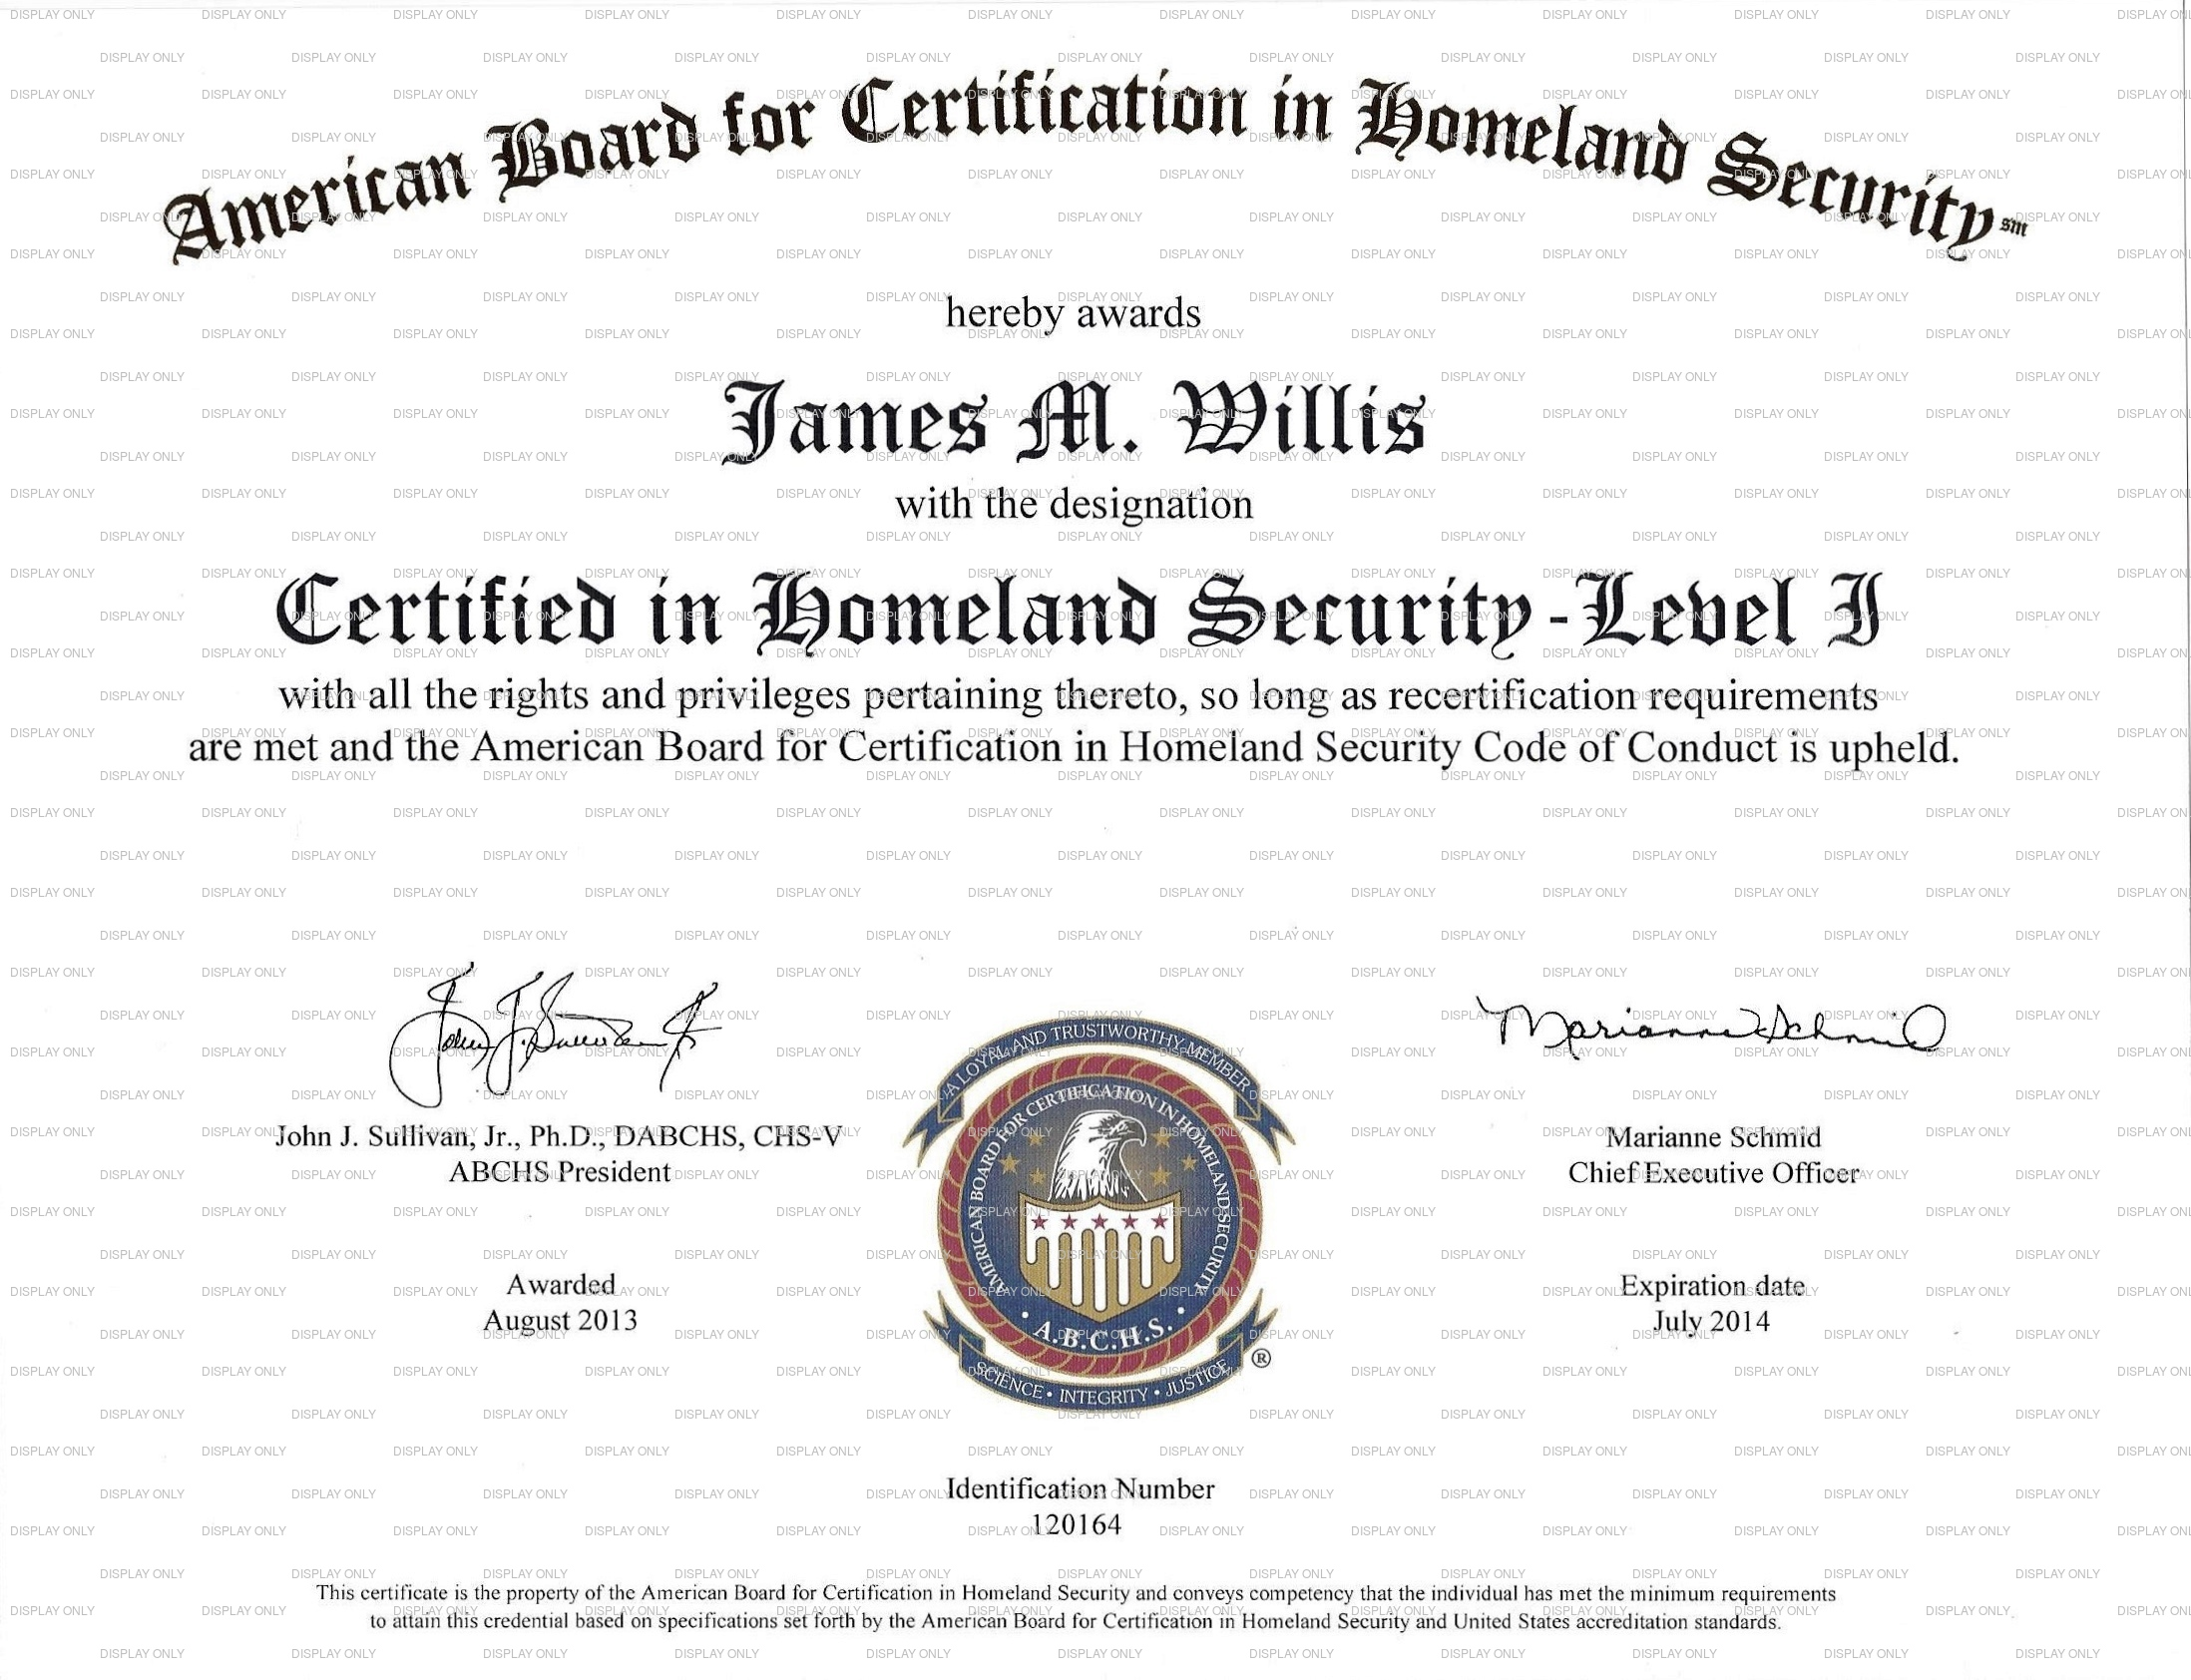 Certified in Homeland Security - Level 1: certificate image